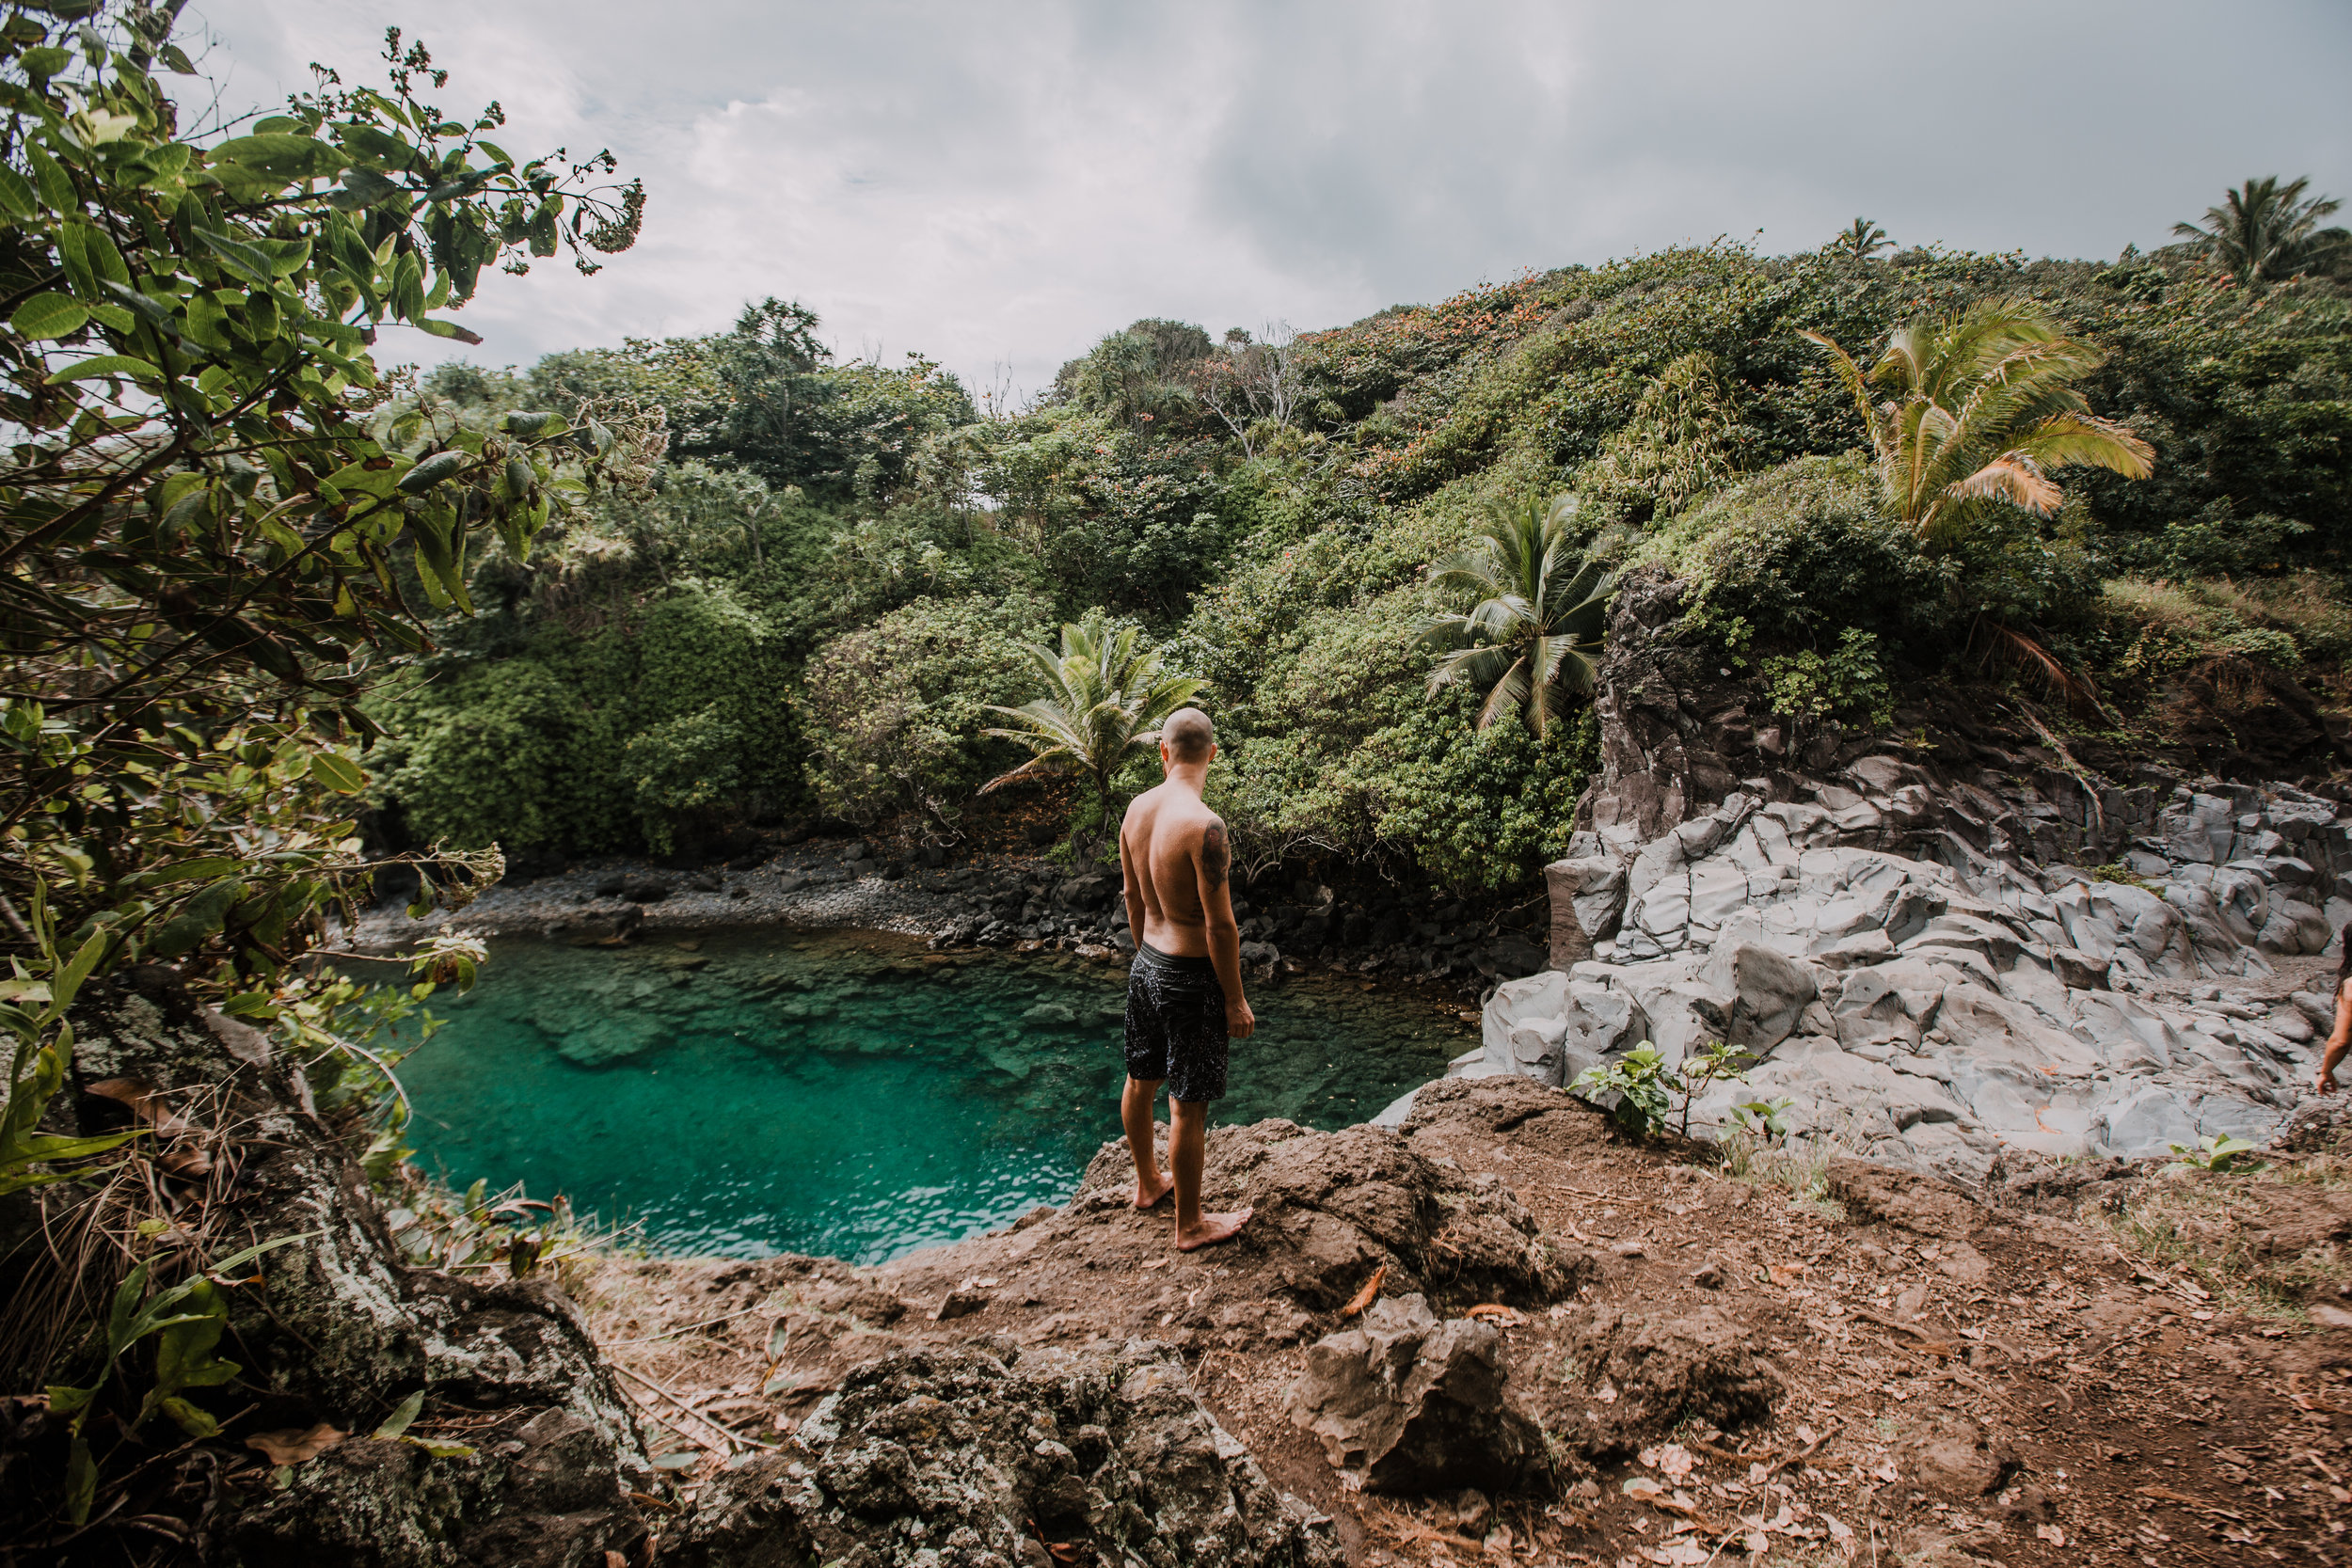 hawaii cliff jumping, seven sacred pools at ohe'o, island hiking, road to hana, hawaii wedding photographer, hawaii elopement photographer, maui wedding, maui engagements, maui elopement